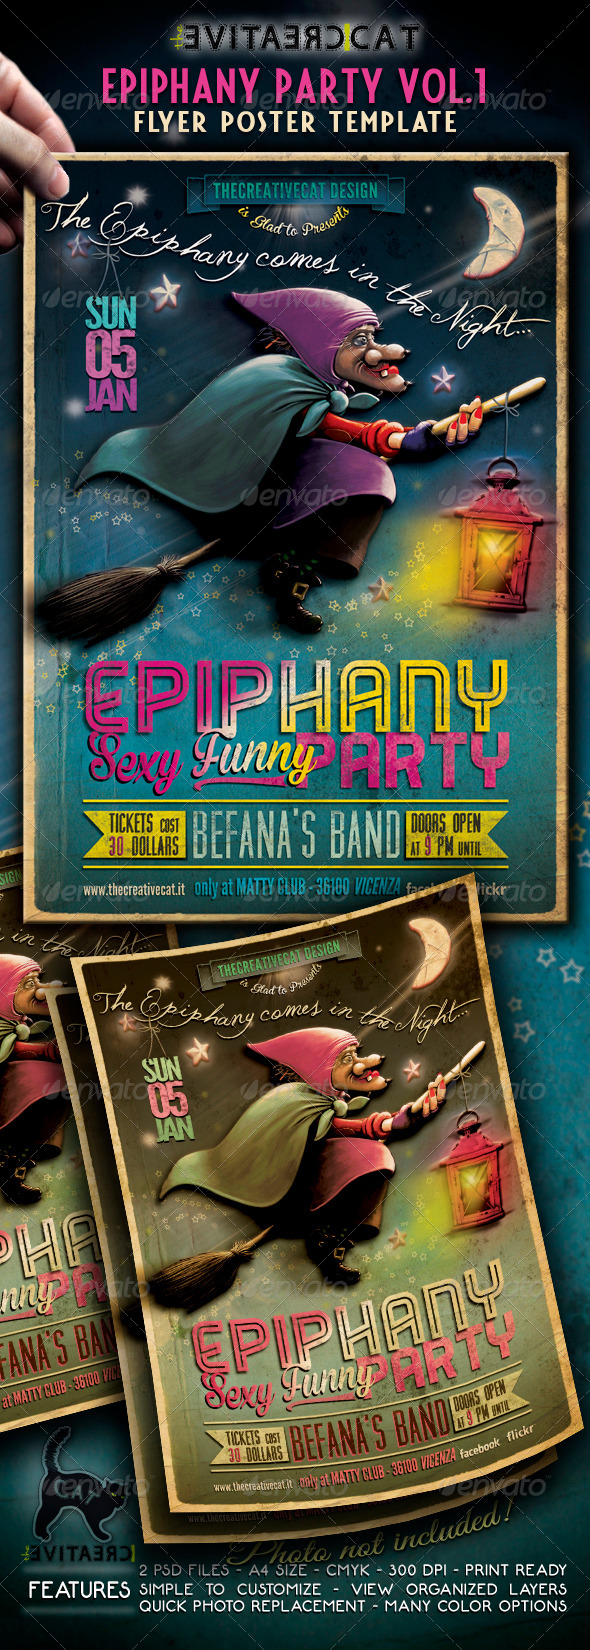 Epiphany Party Flyer/Poster Vol. 1 - Events Flyers